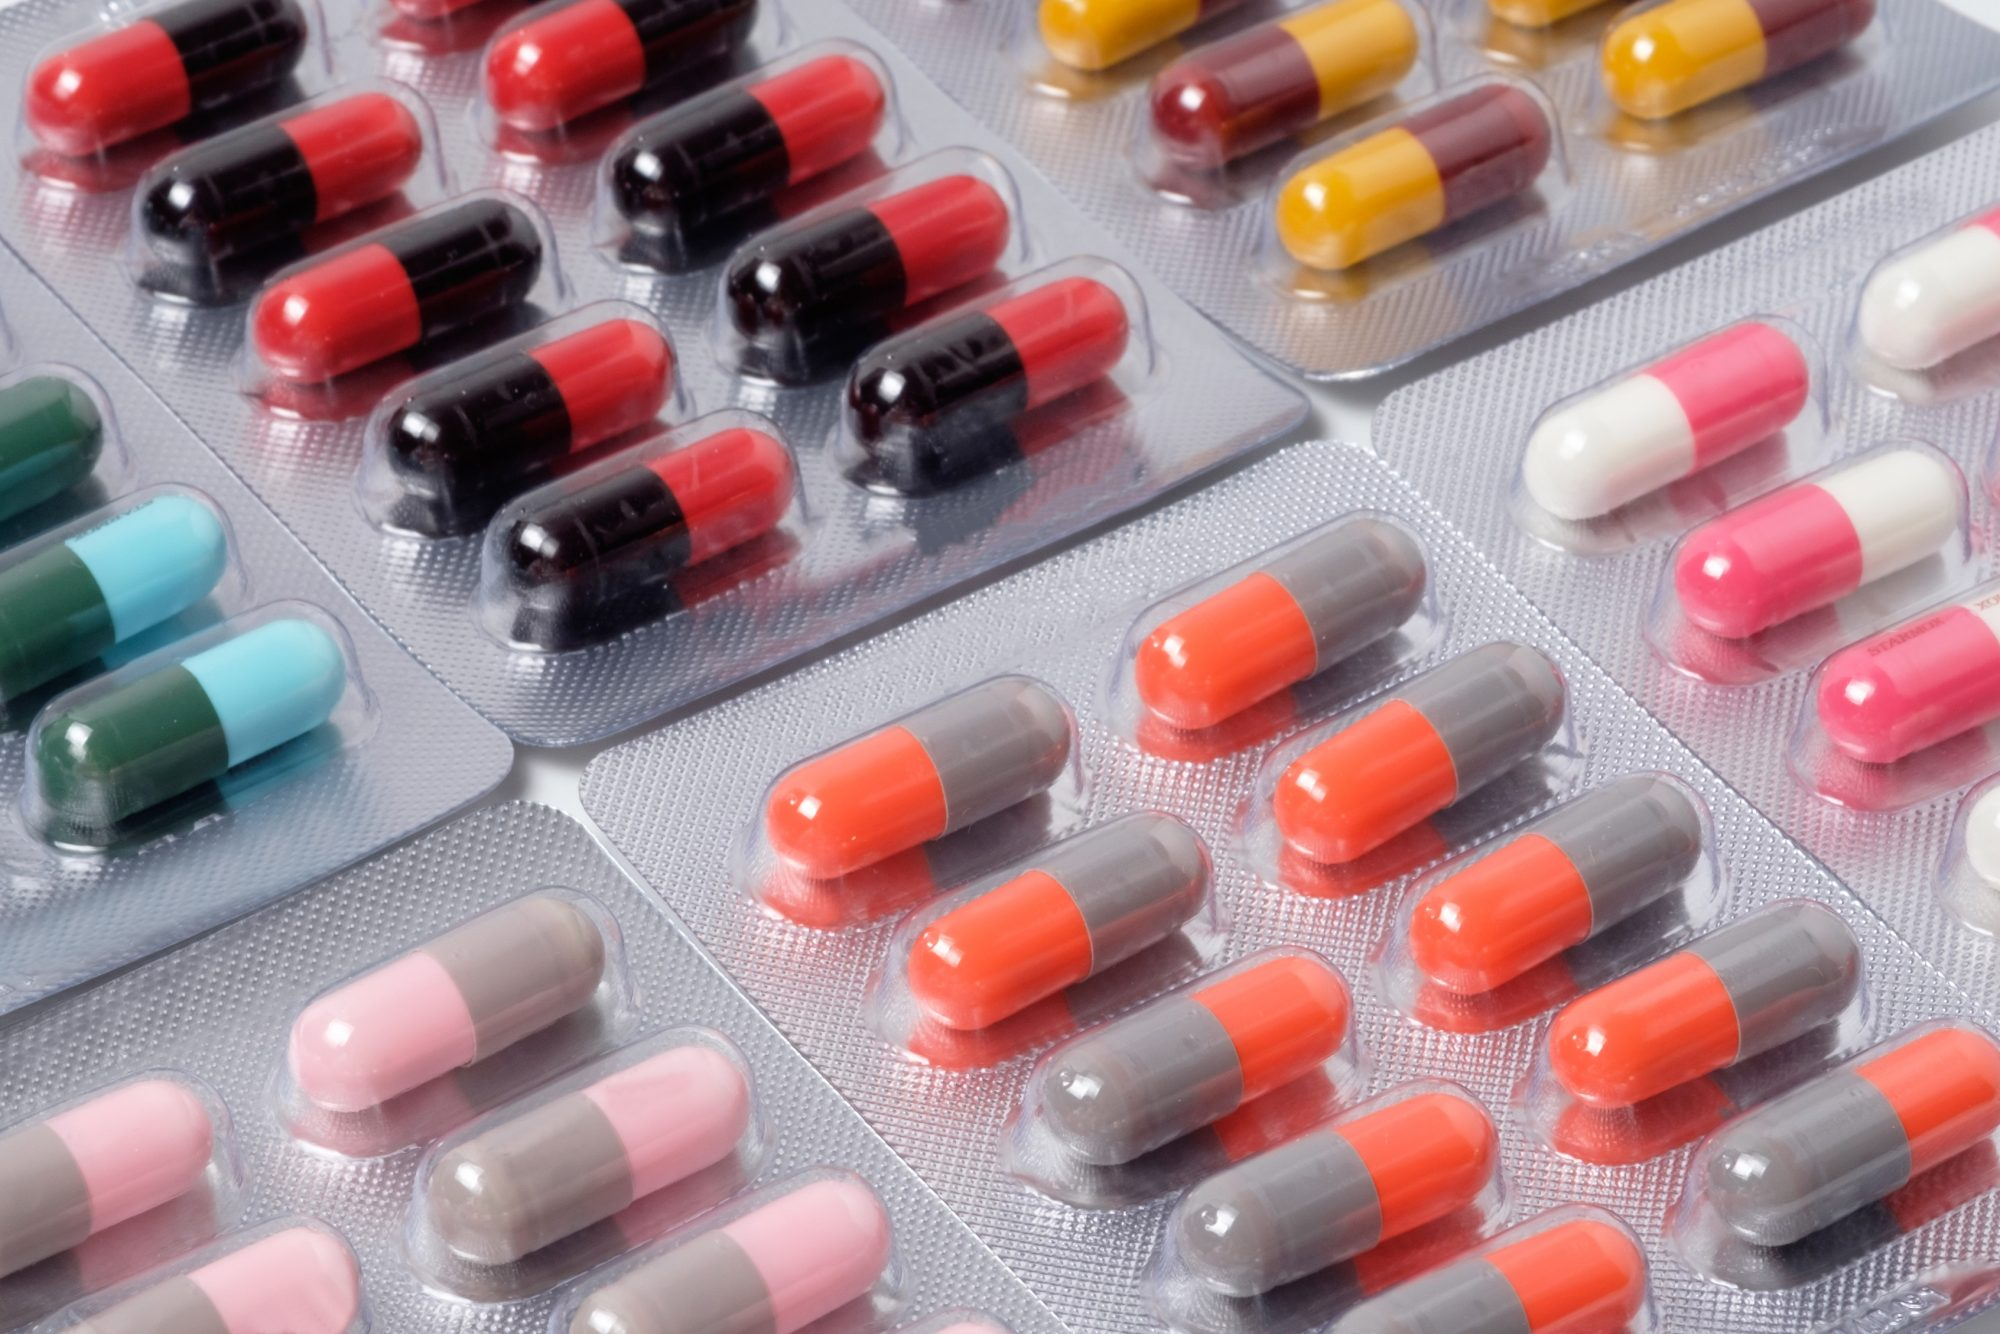 antibiotics-pill-blister-packaging